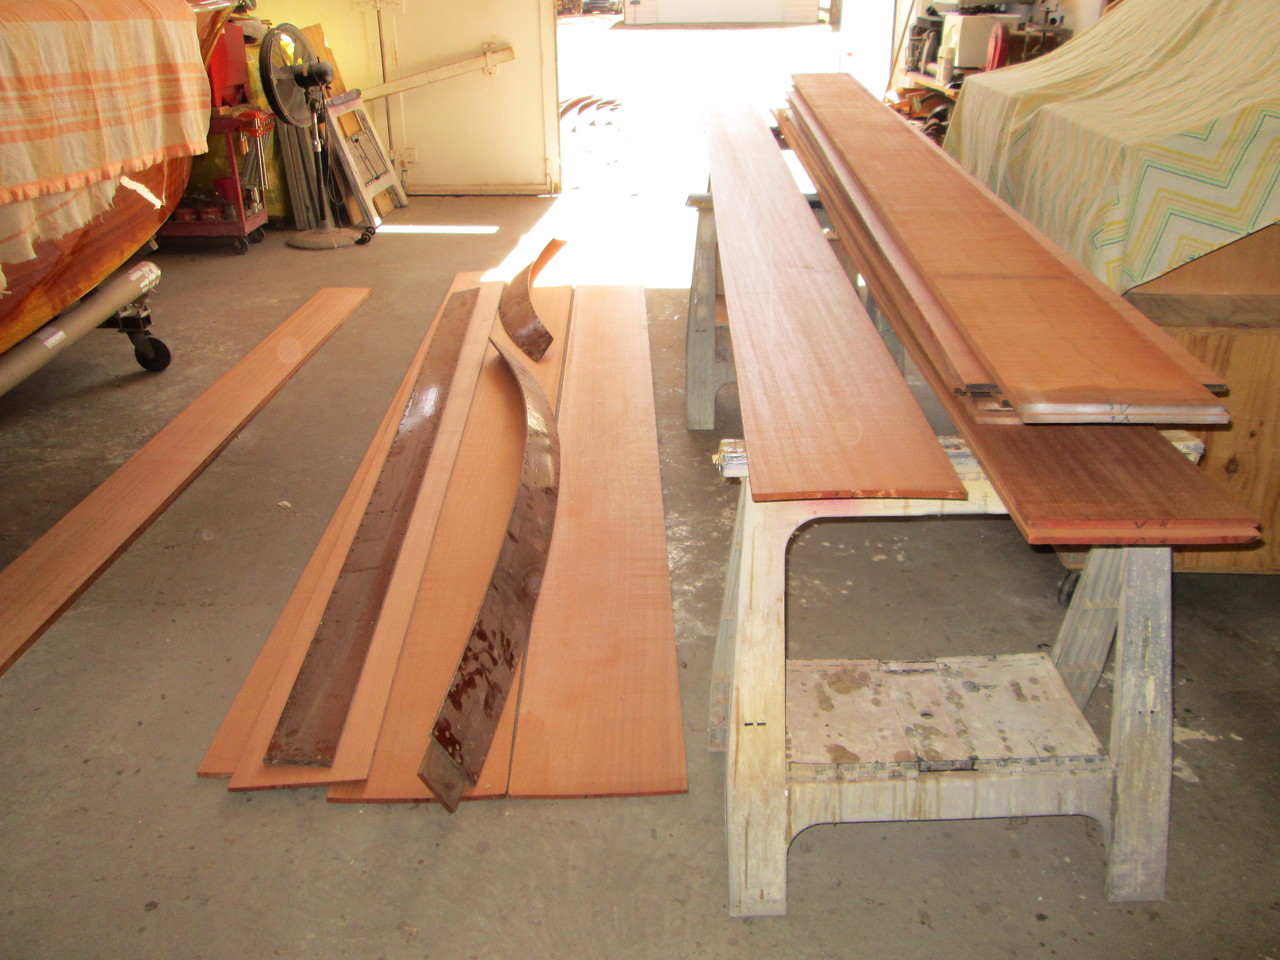 Sorting the new wood by color and size.